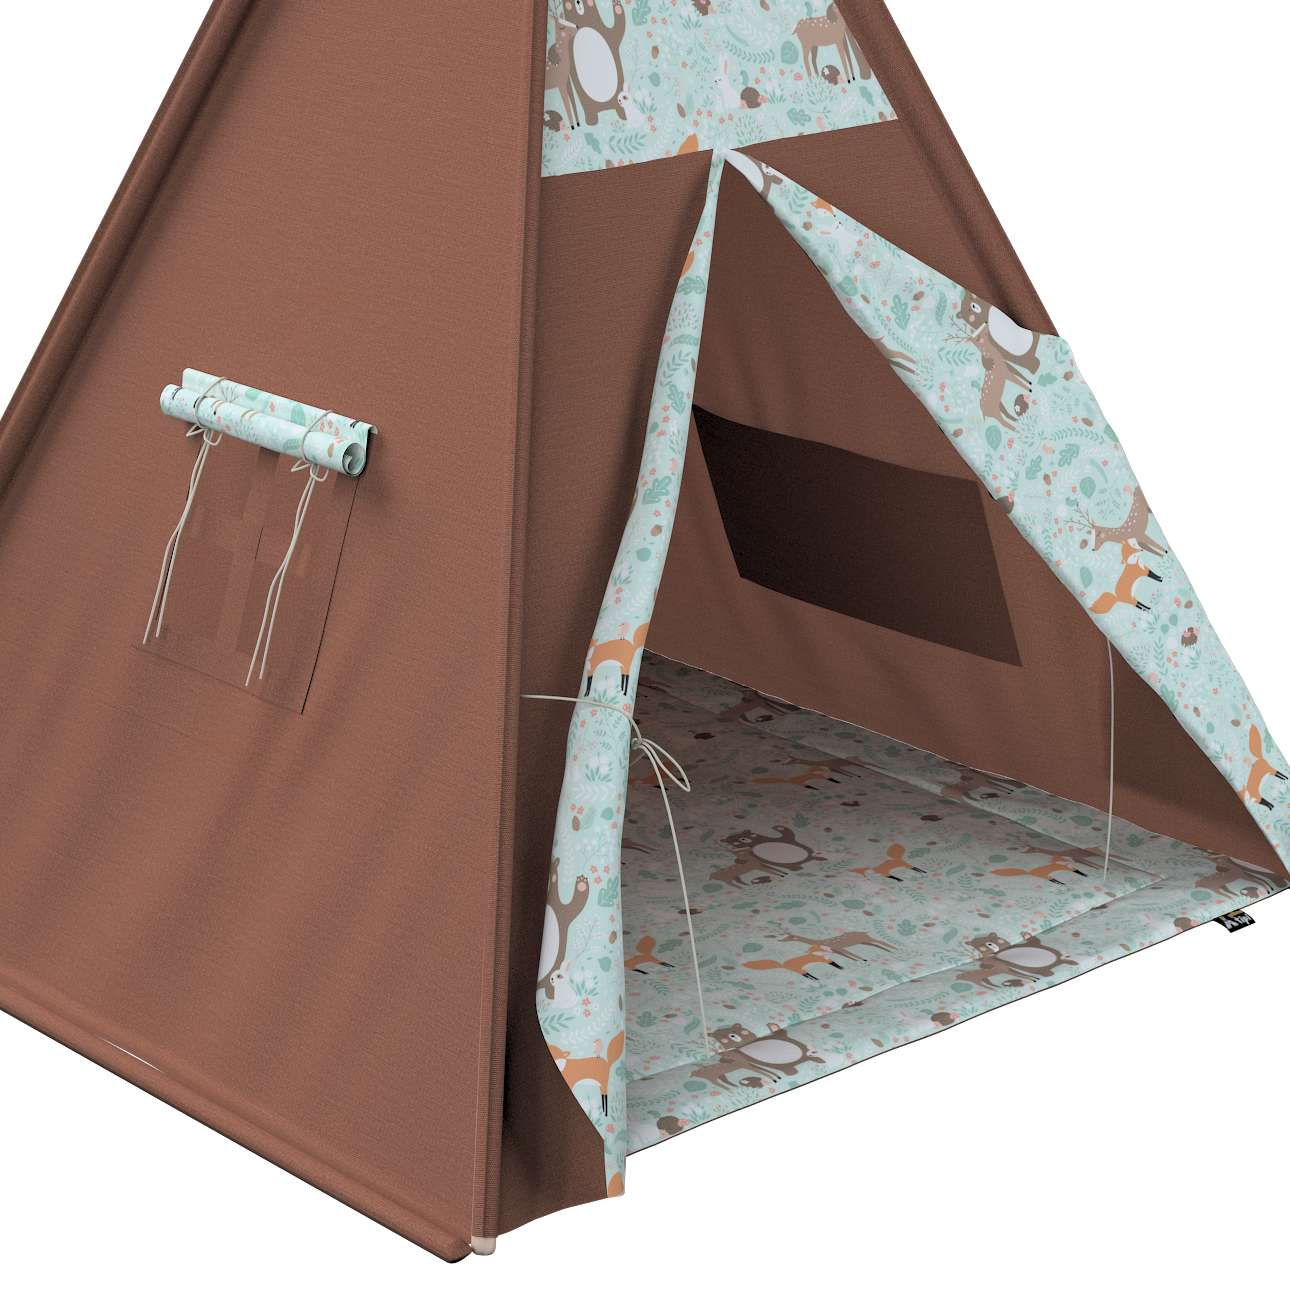 Tepee mat in collection Magic Collection, fabric: 500-15